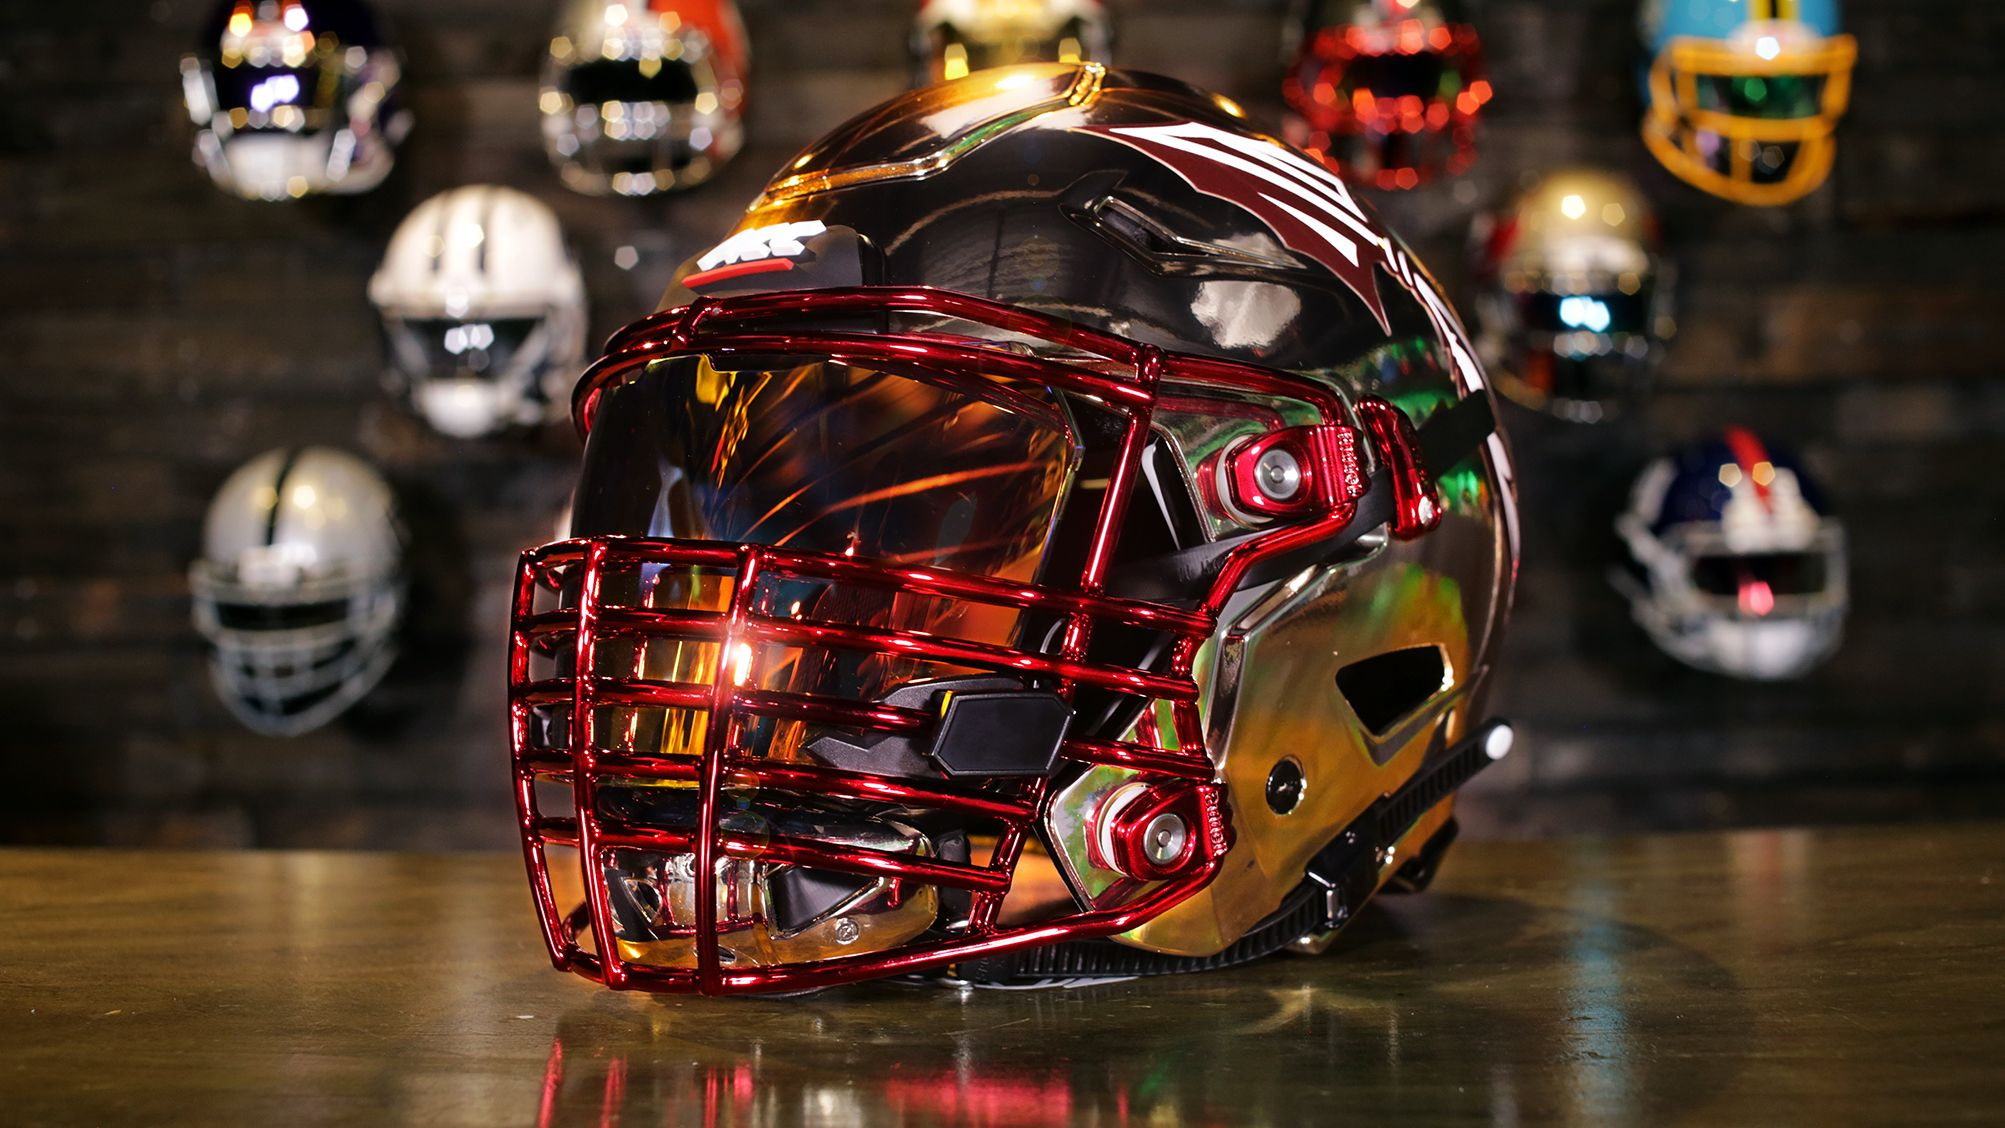 Check out this custom helmet that was purchased as a gift